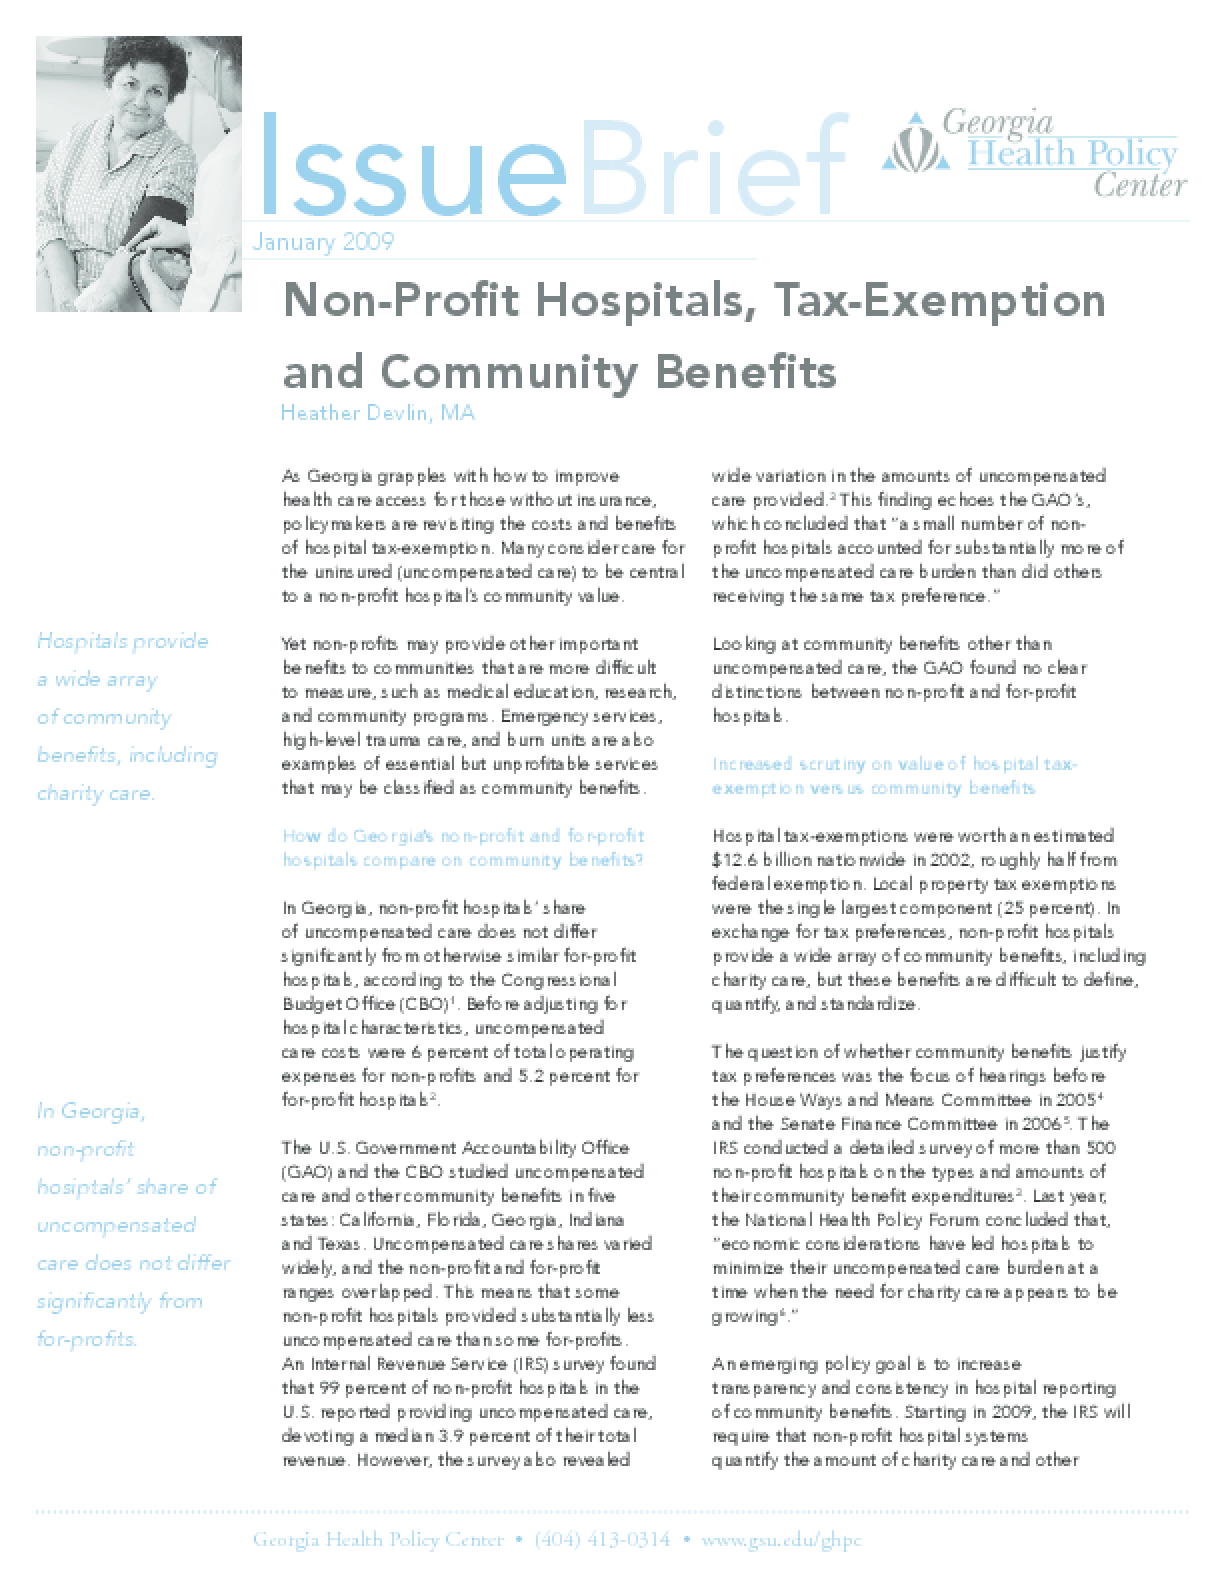 Non-Profit Hospitals, Tax Exemption, and Community Benefits